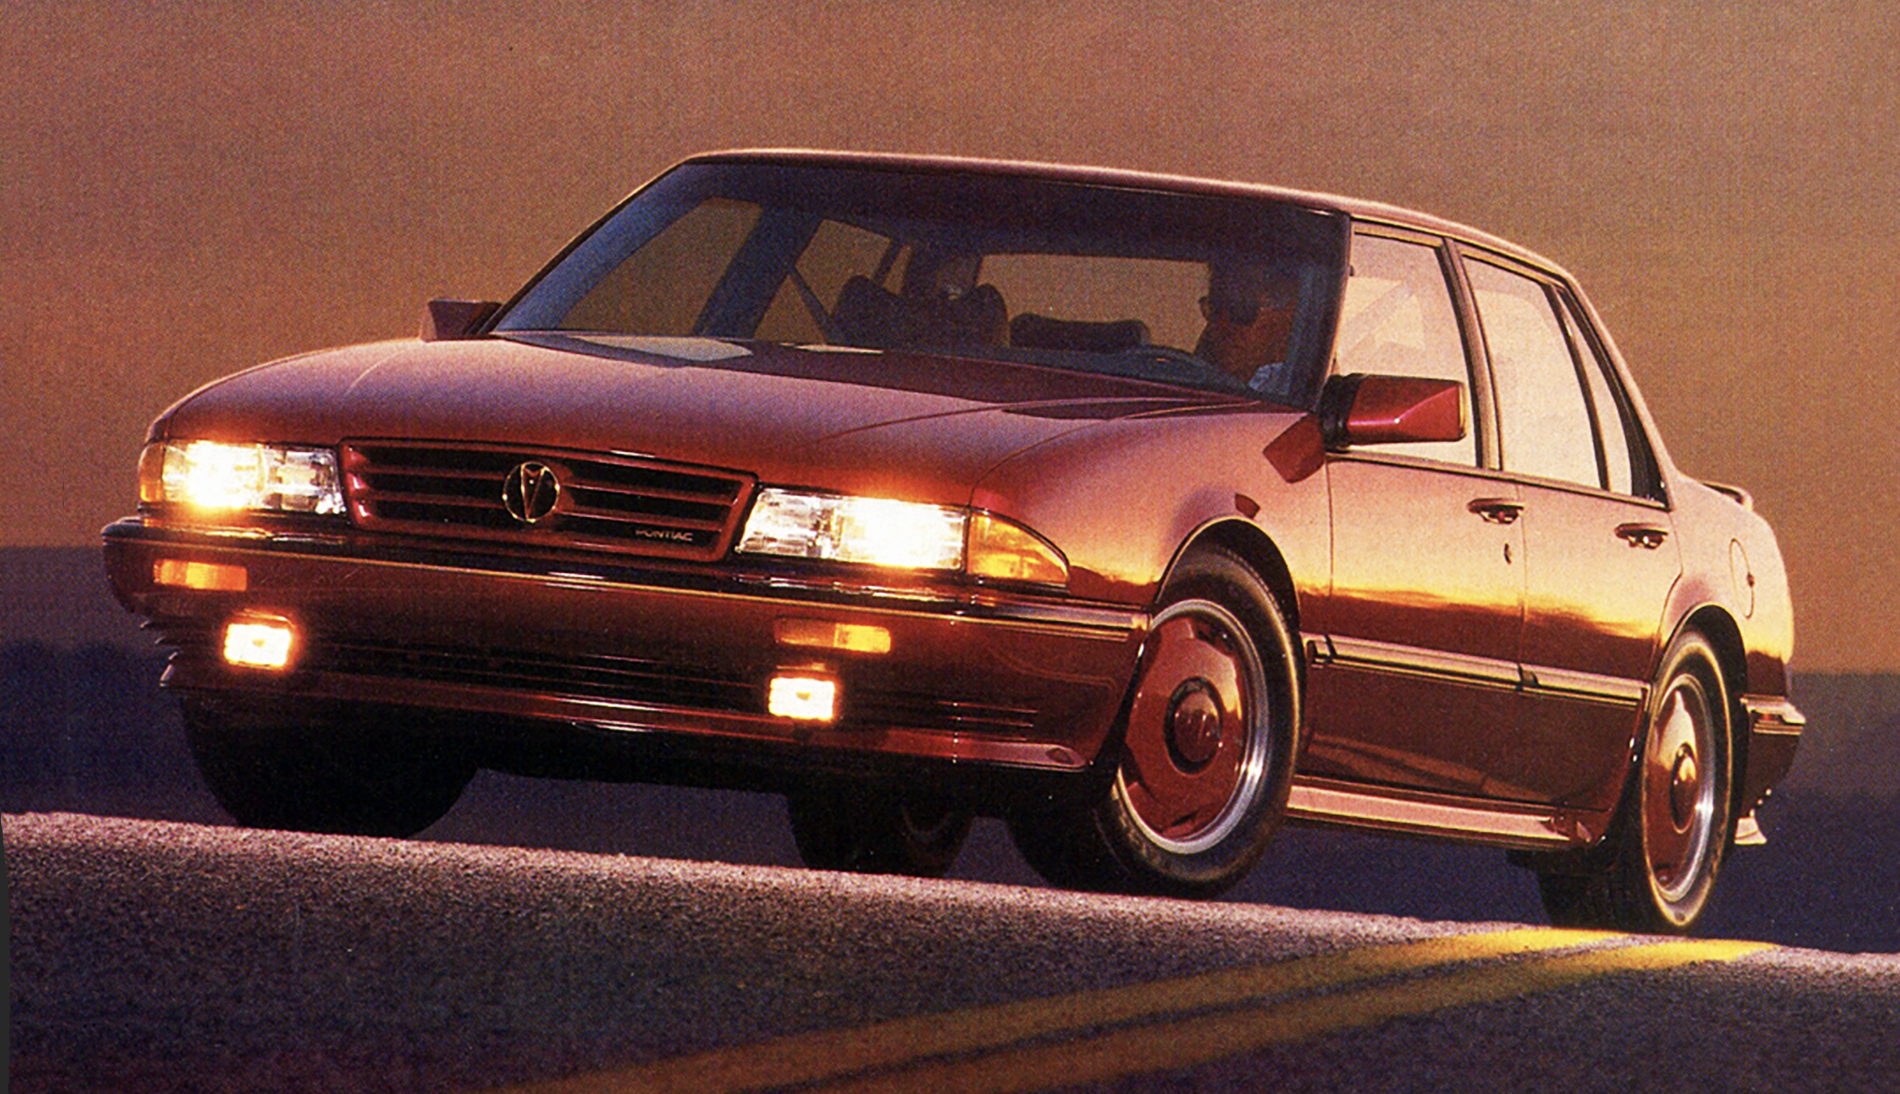 A Gallery of 1988 Sedan Ads